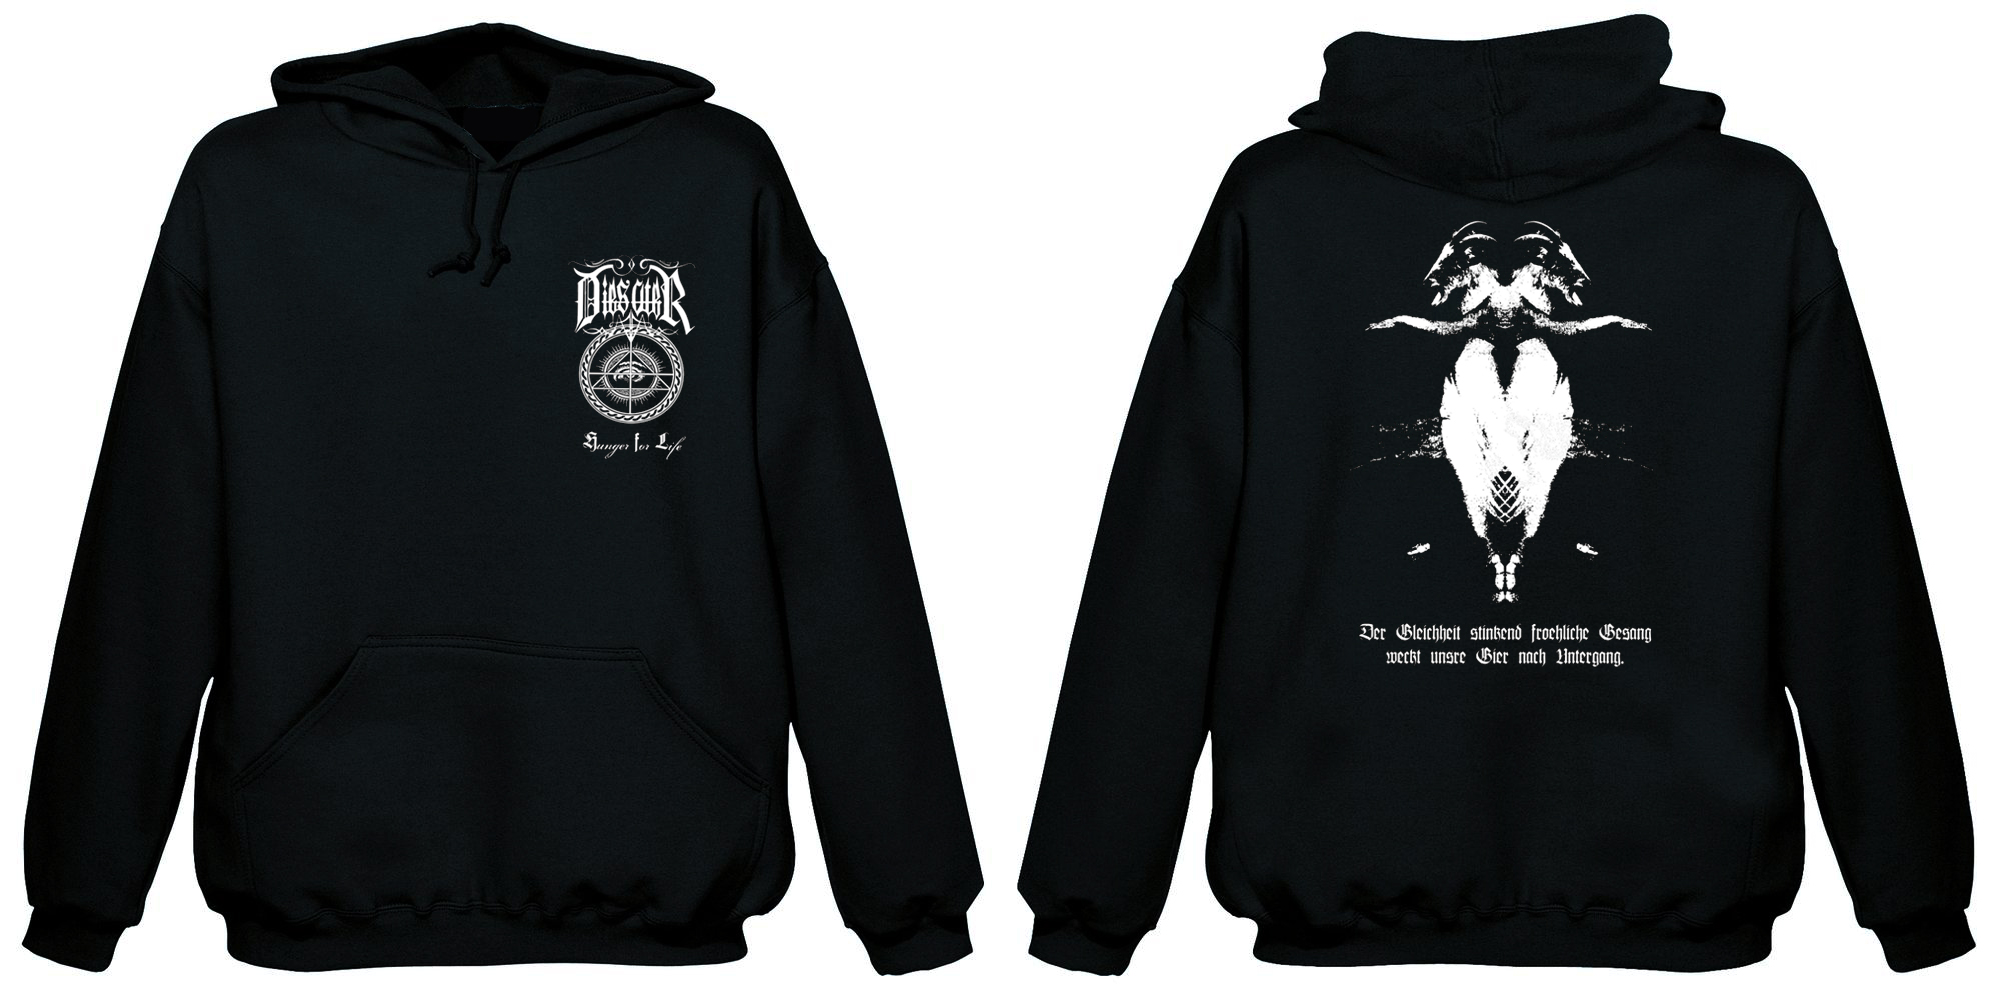 Dies Ater-Hunger For Life (Hooded Sweatshirt)